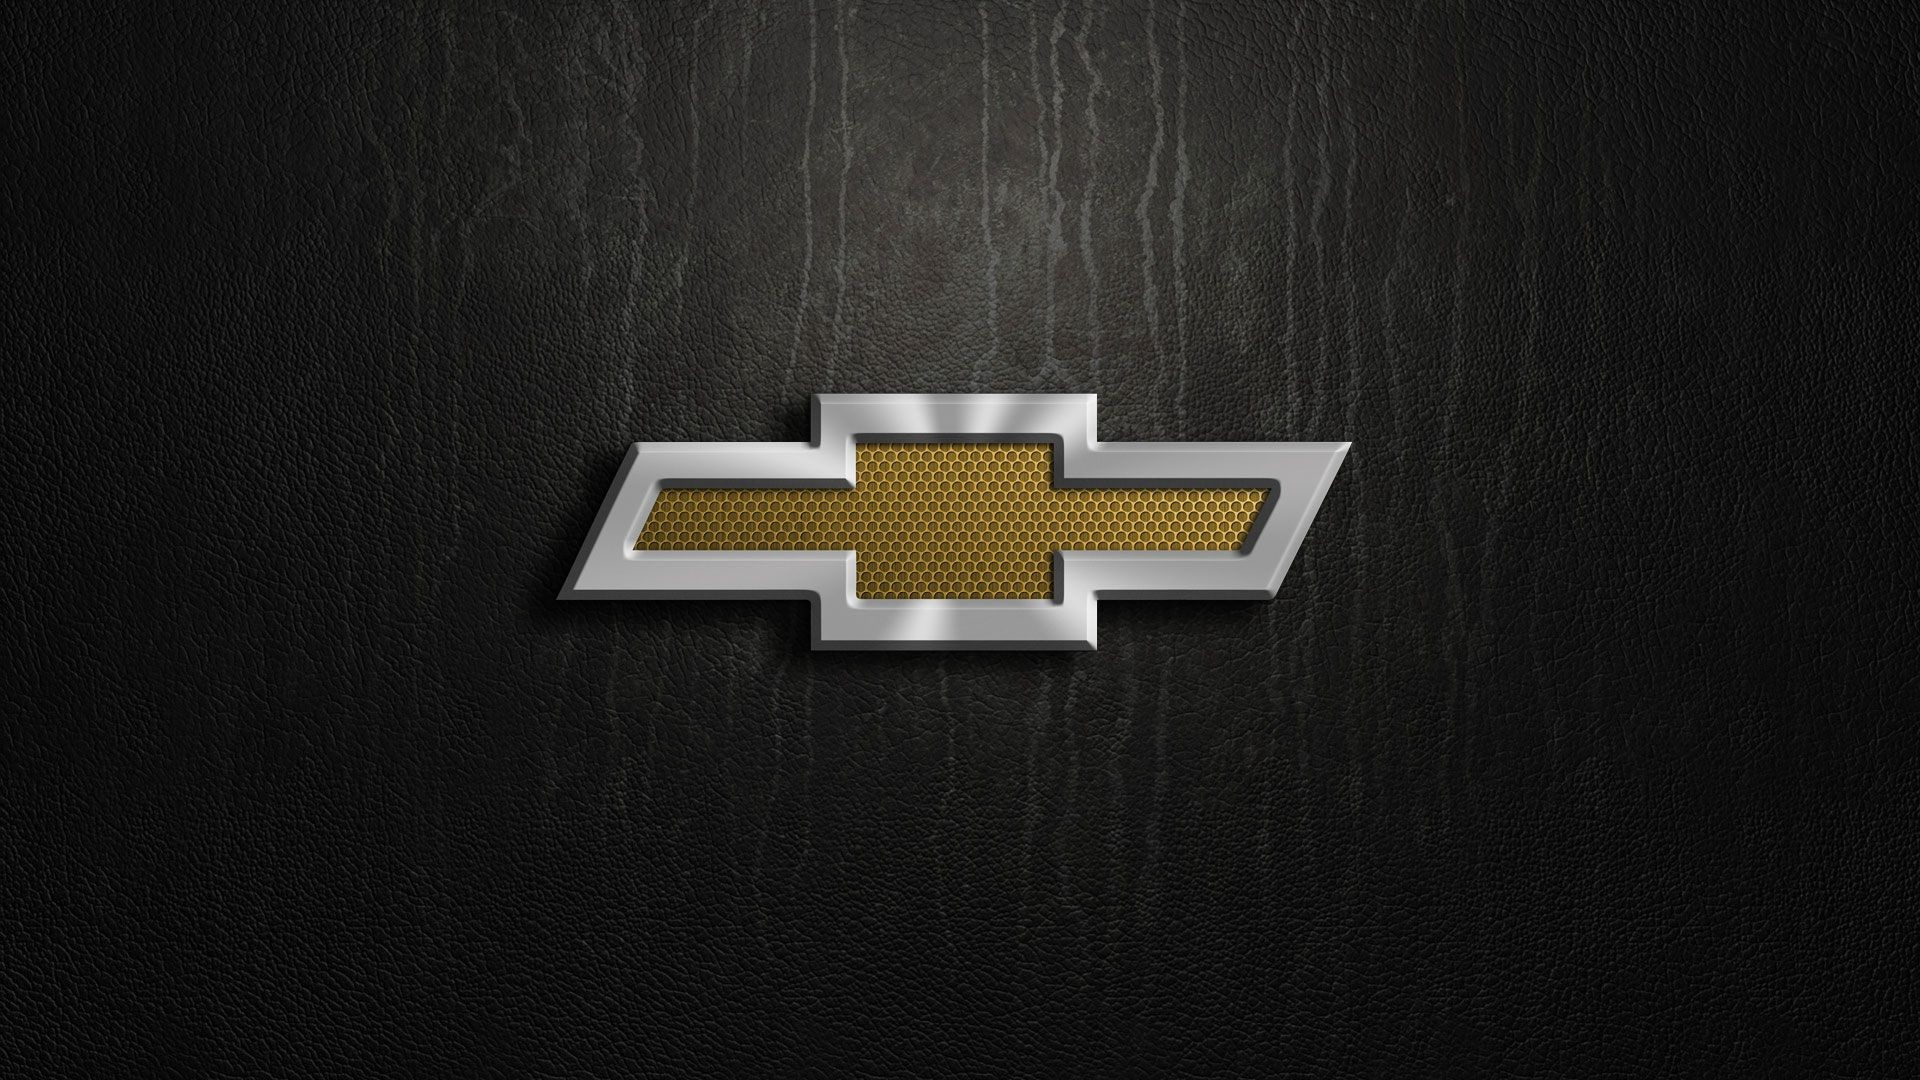 Res: 1920x1080, HD Chevy Logo Wallpapers - WallpaperSafari